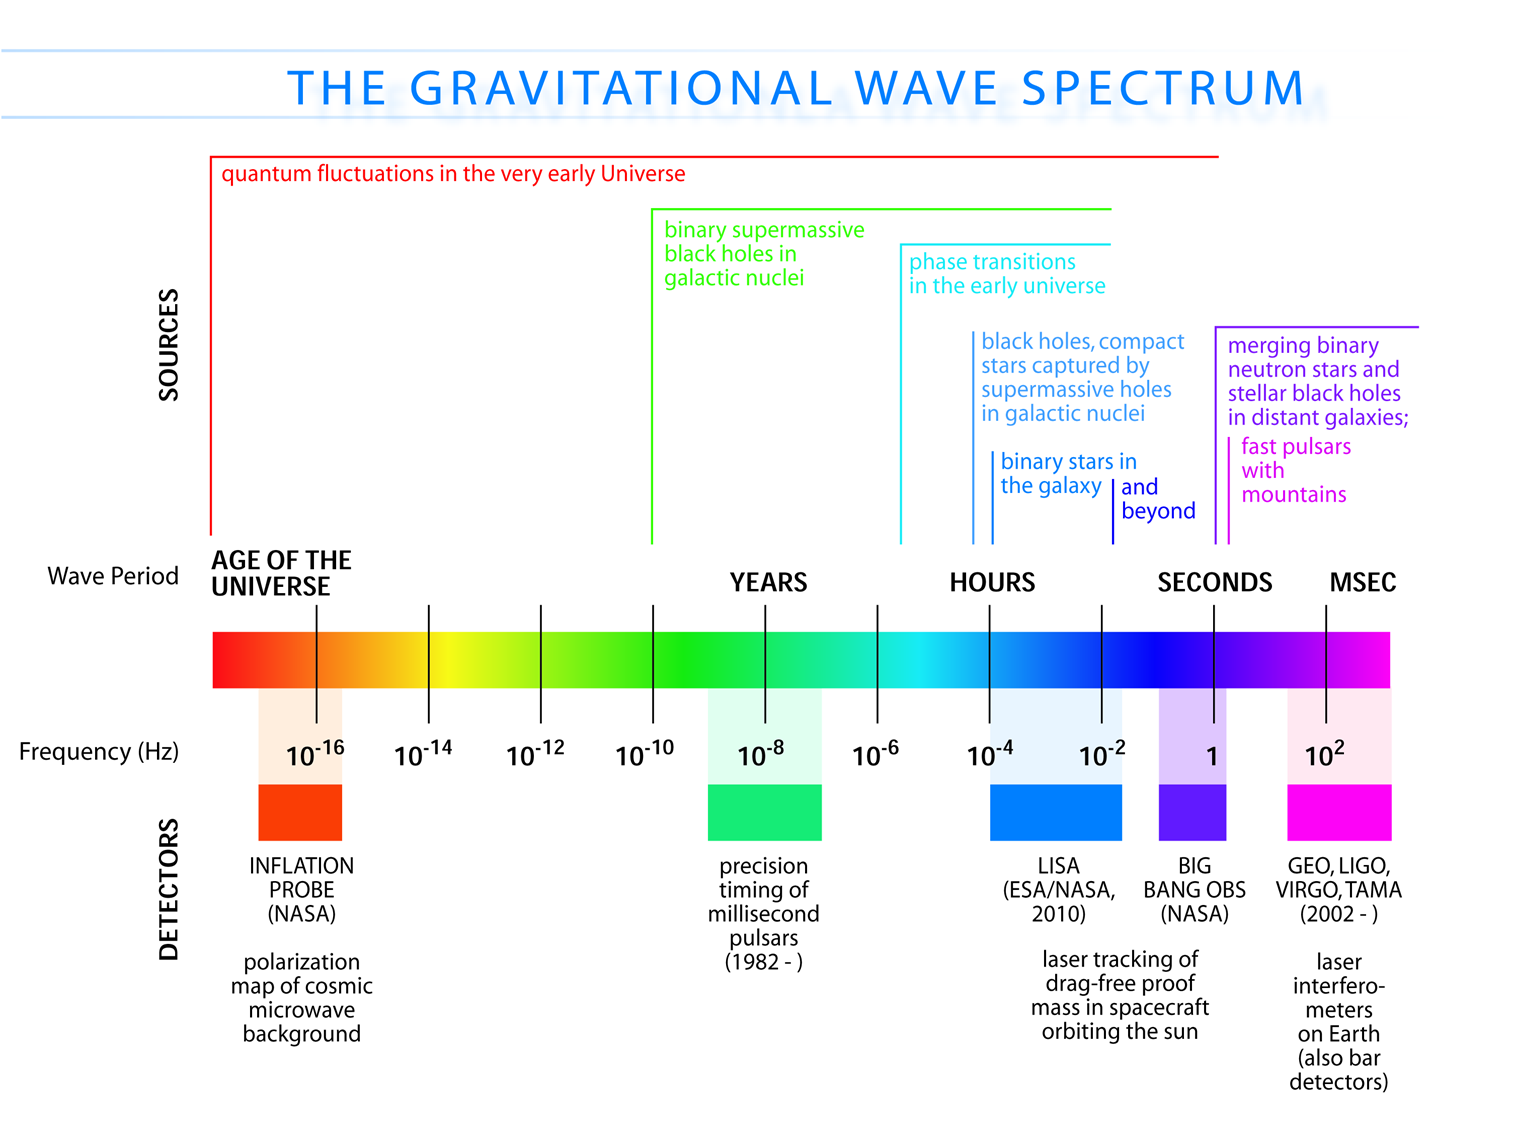 The wider gravitational wave spectrum